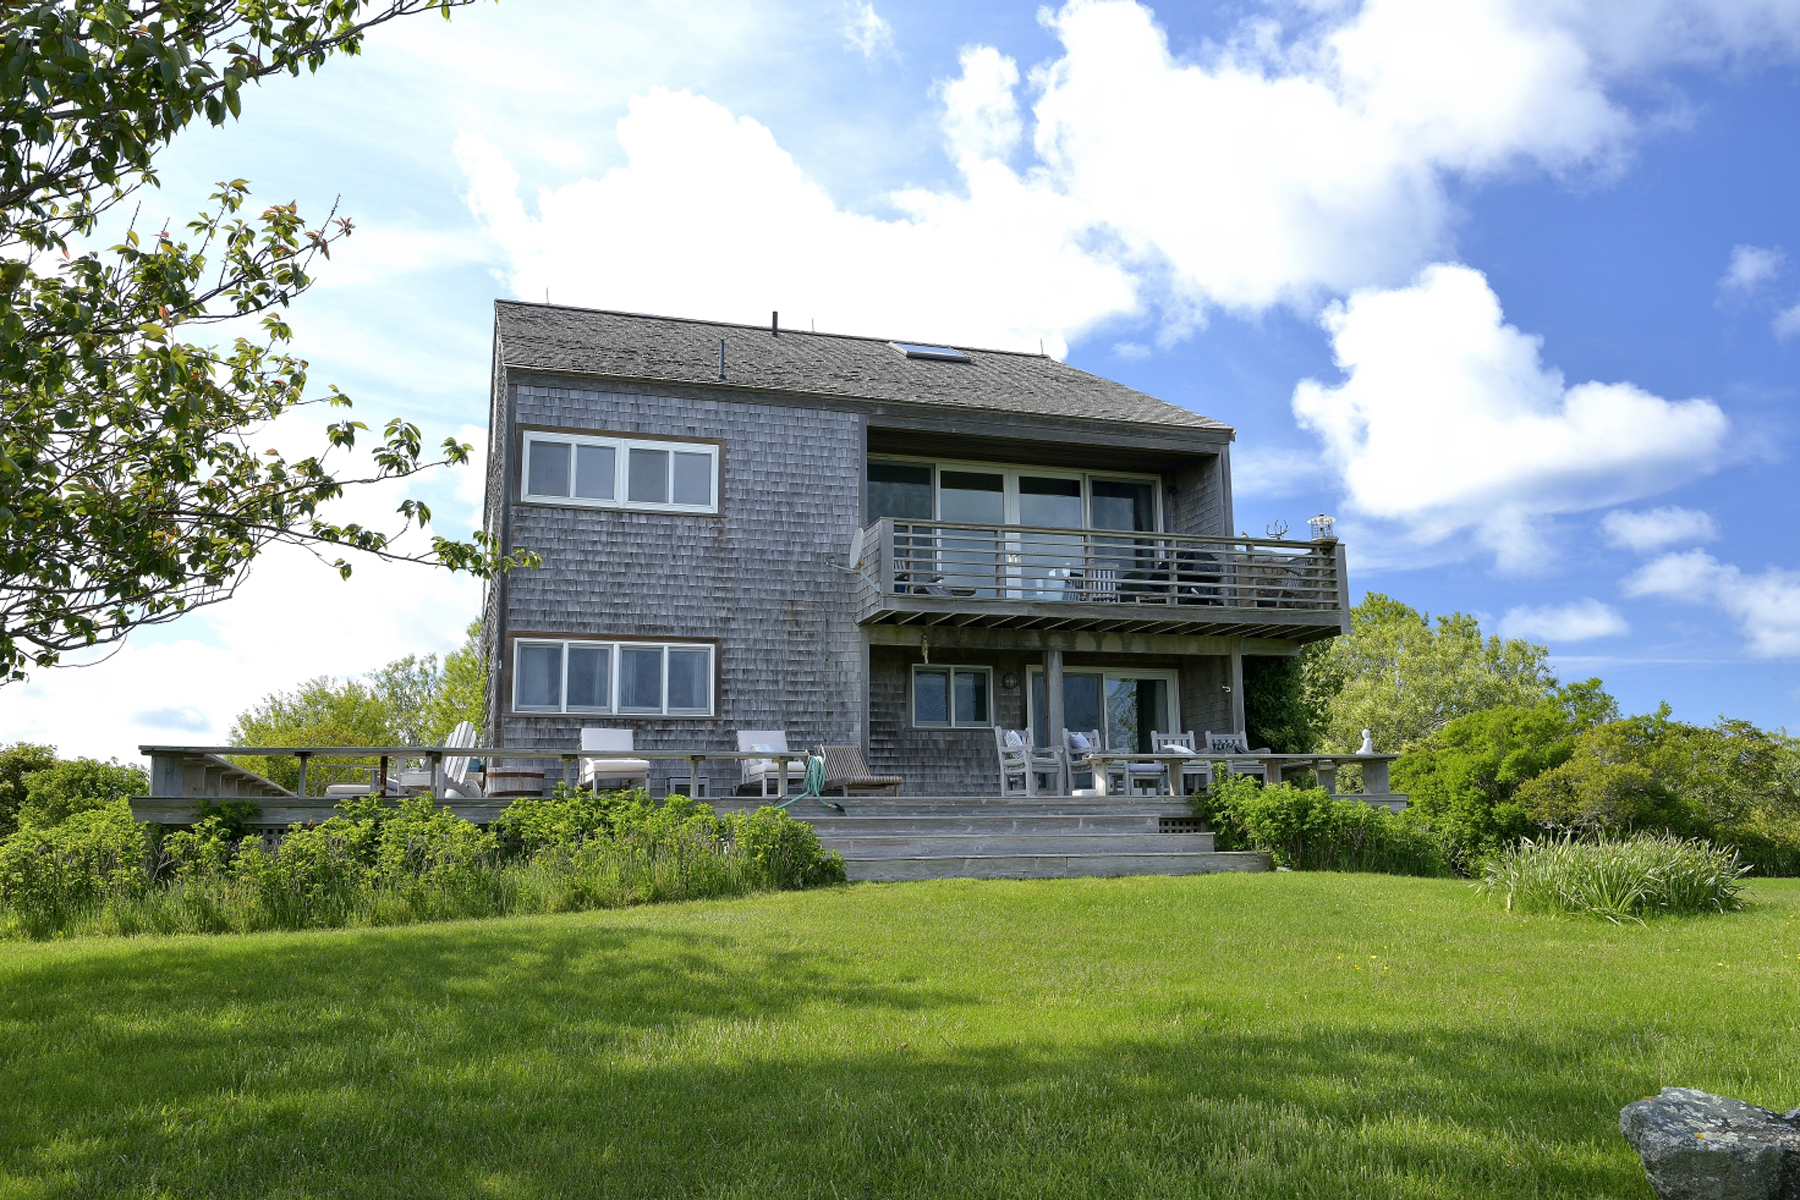 Casa Unifamiliar por un Venta en Gorgeous Unobstructed Water Views! 56 Squam Road 58 Squam Road Nantucket, Massachusetts, 02554 Estados Unidos